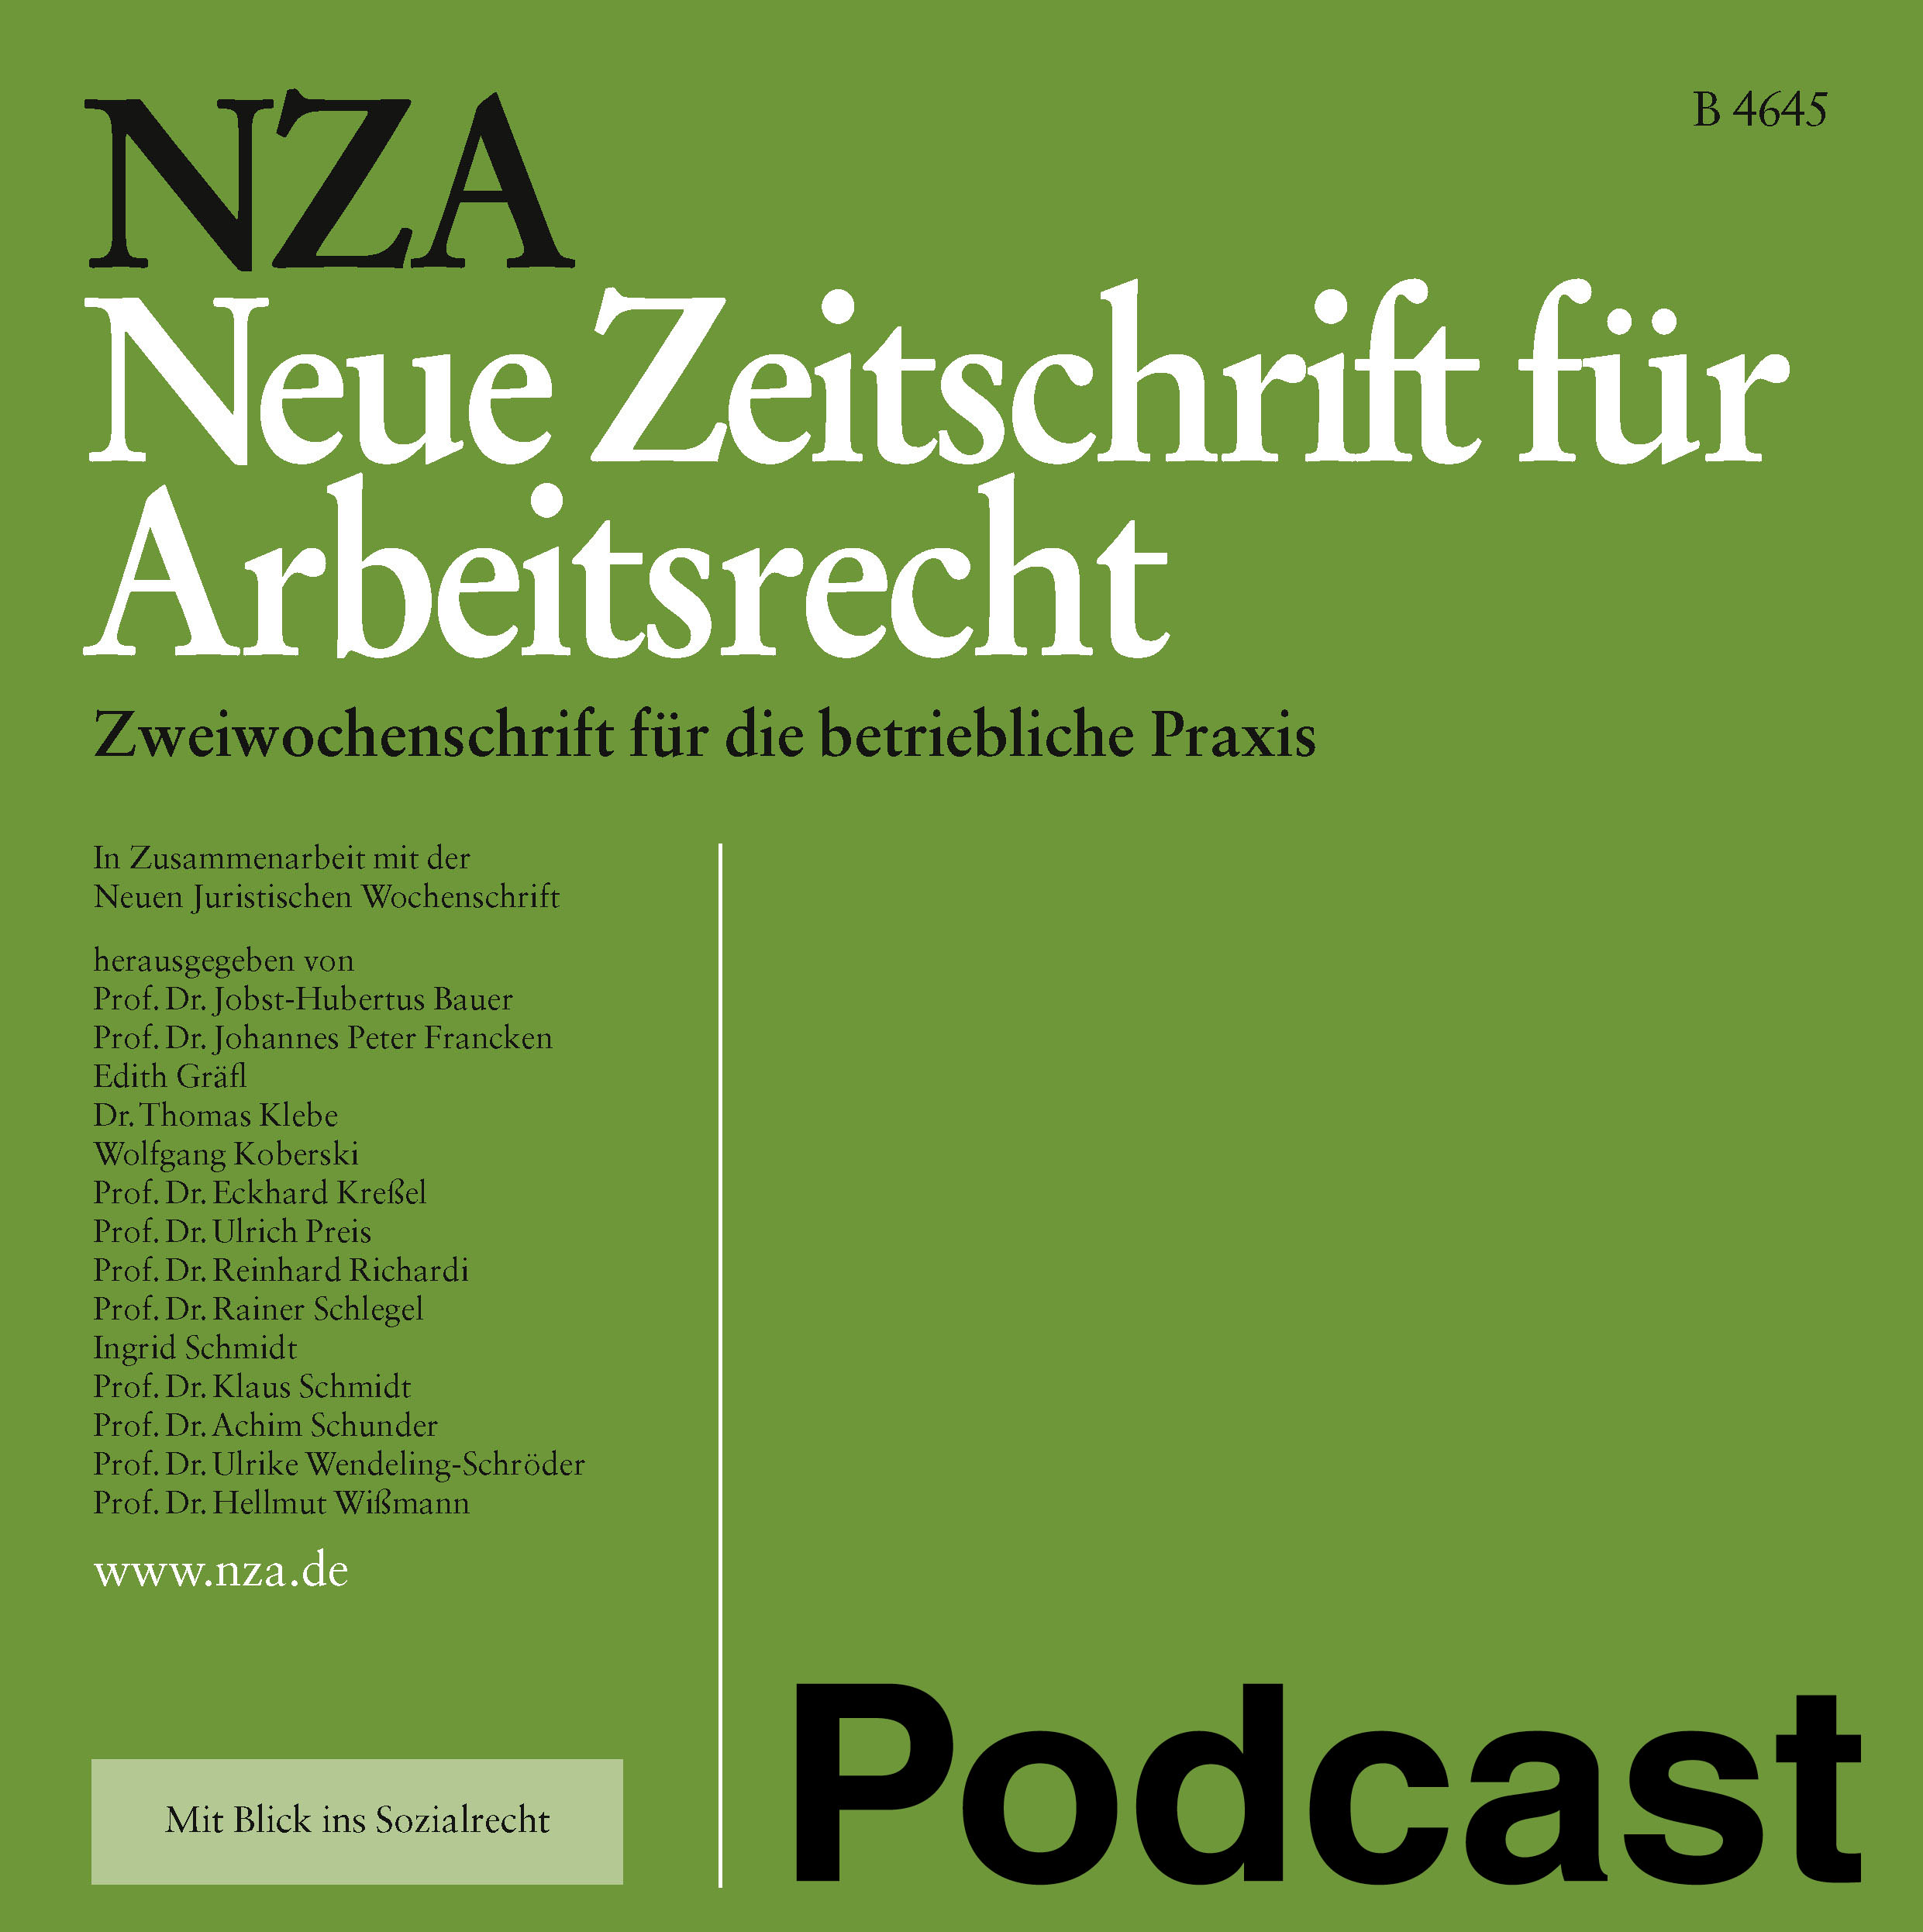 NZA-Podcast logo